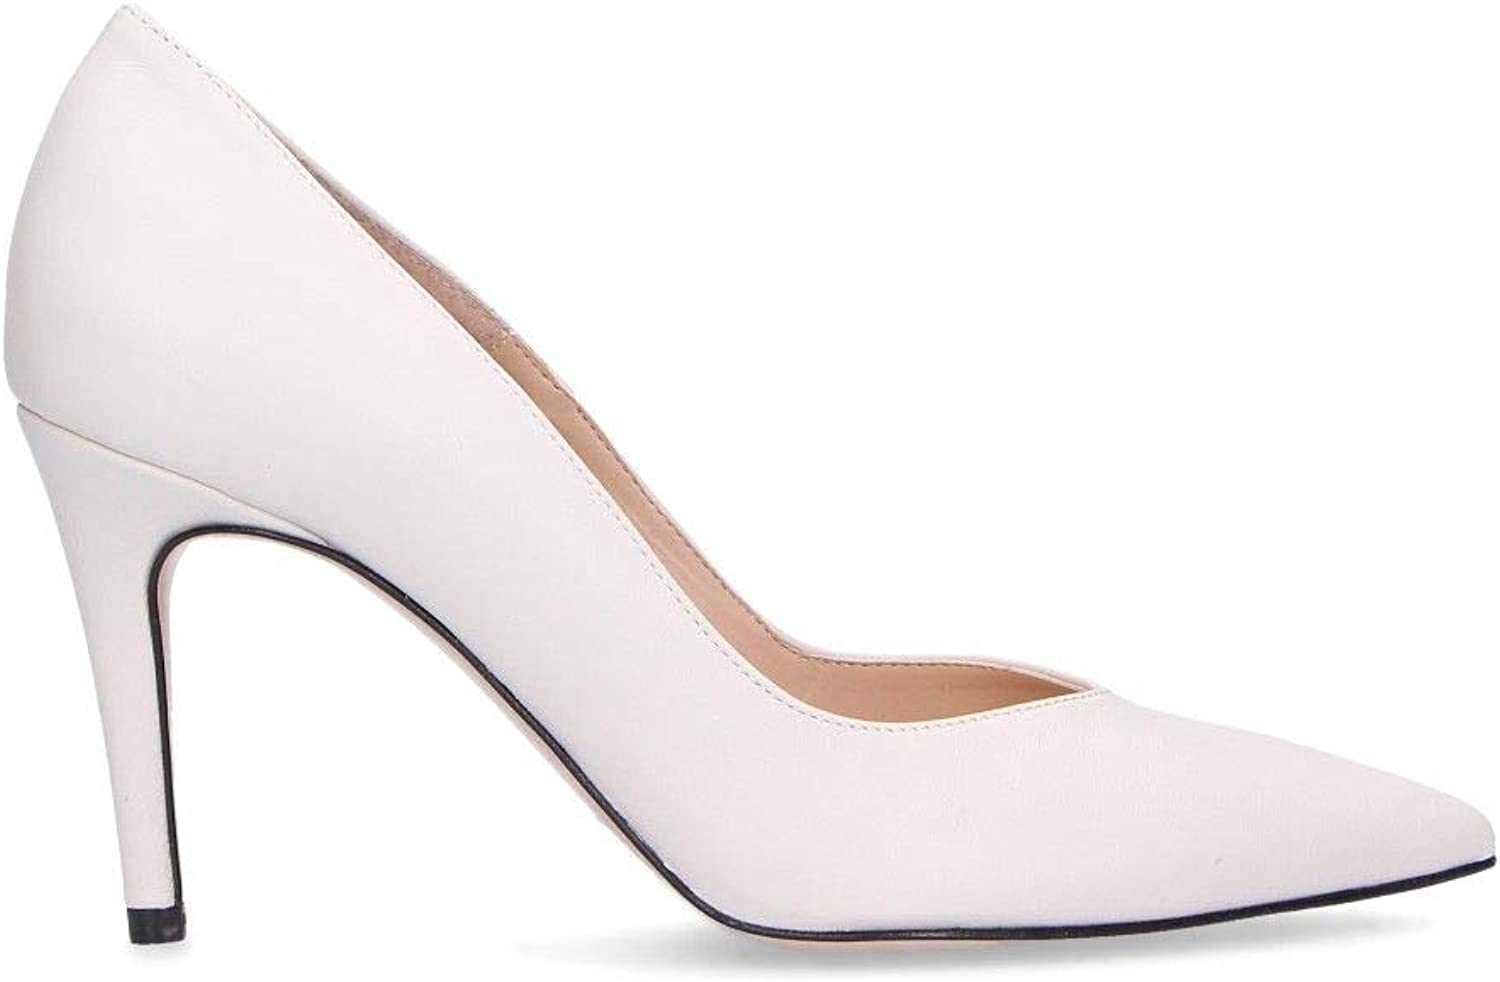 DI LUNA Women's C1091BWHITE Beige Leather Pumps